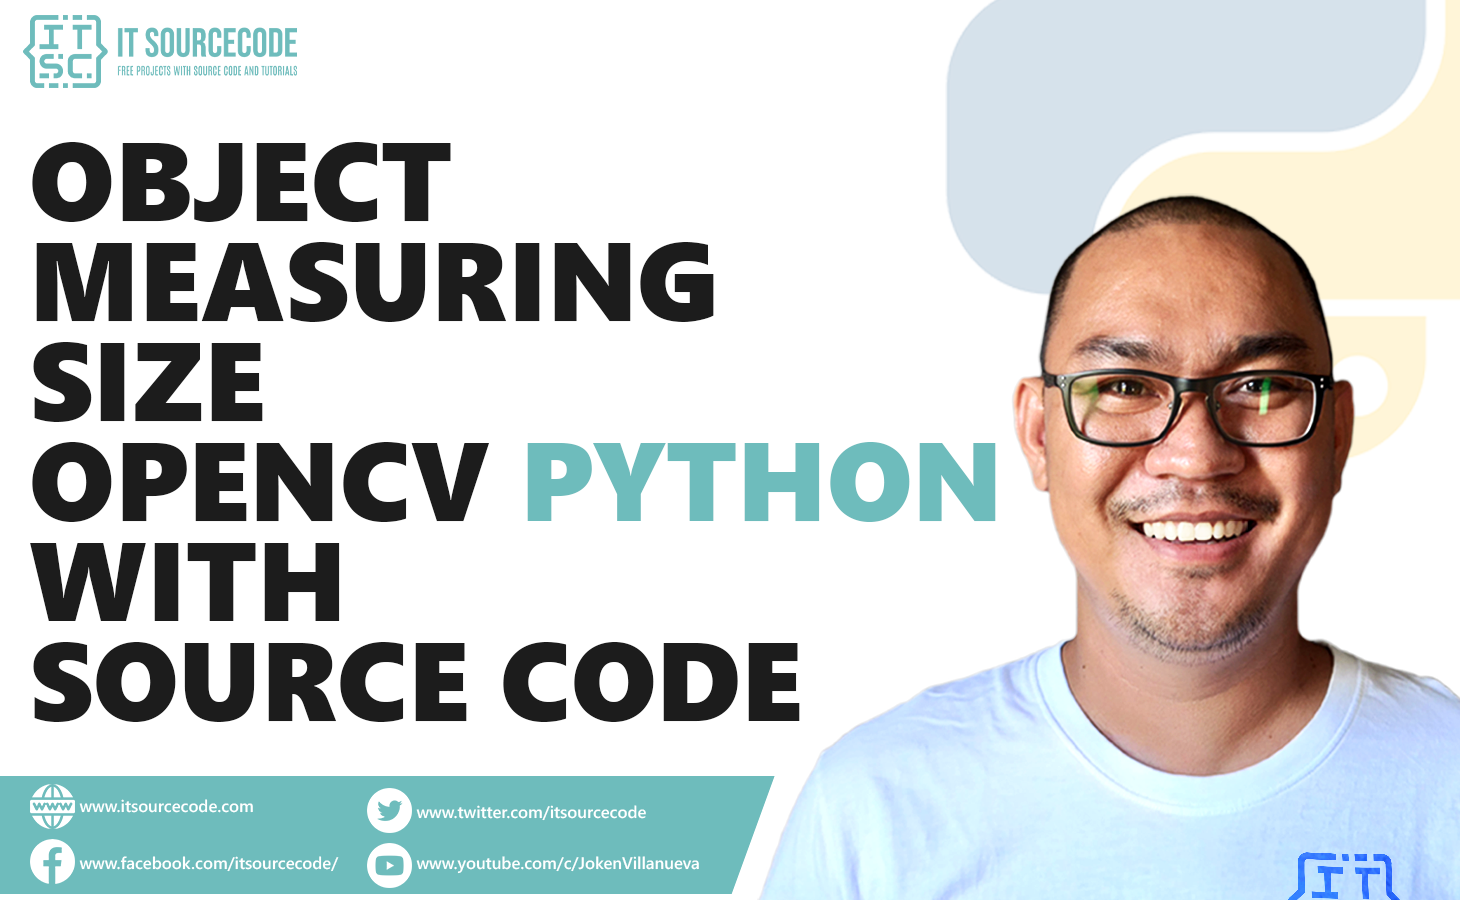 Object Measuring Size OpenCV Python With Source Code